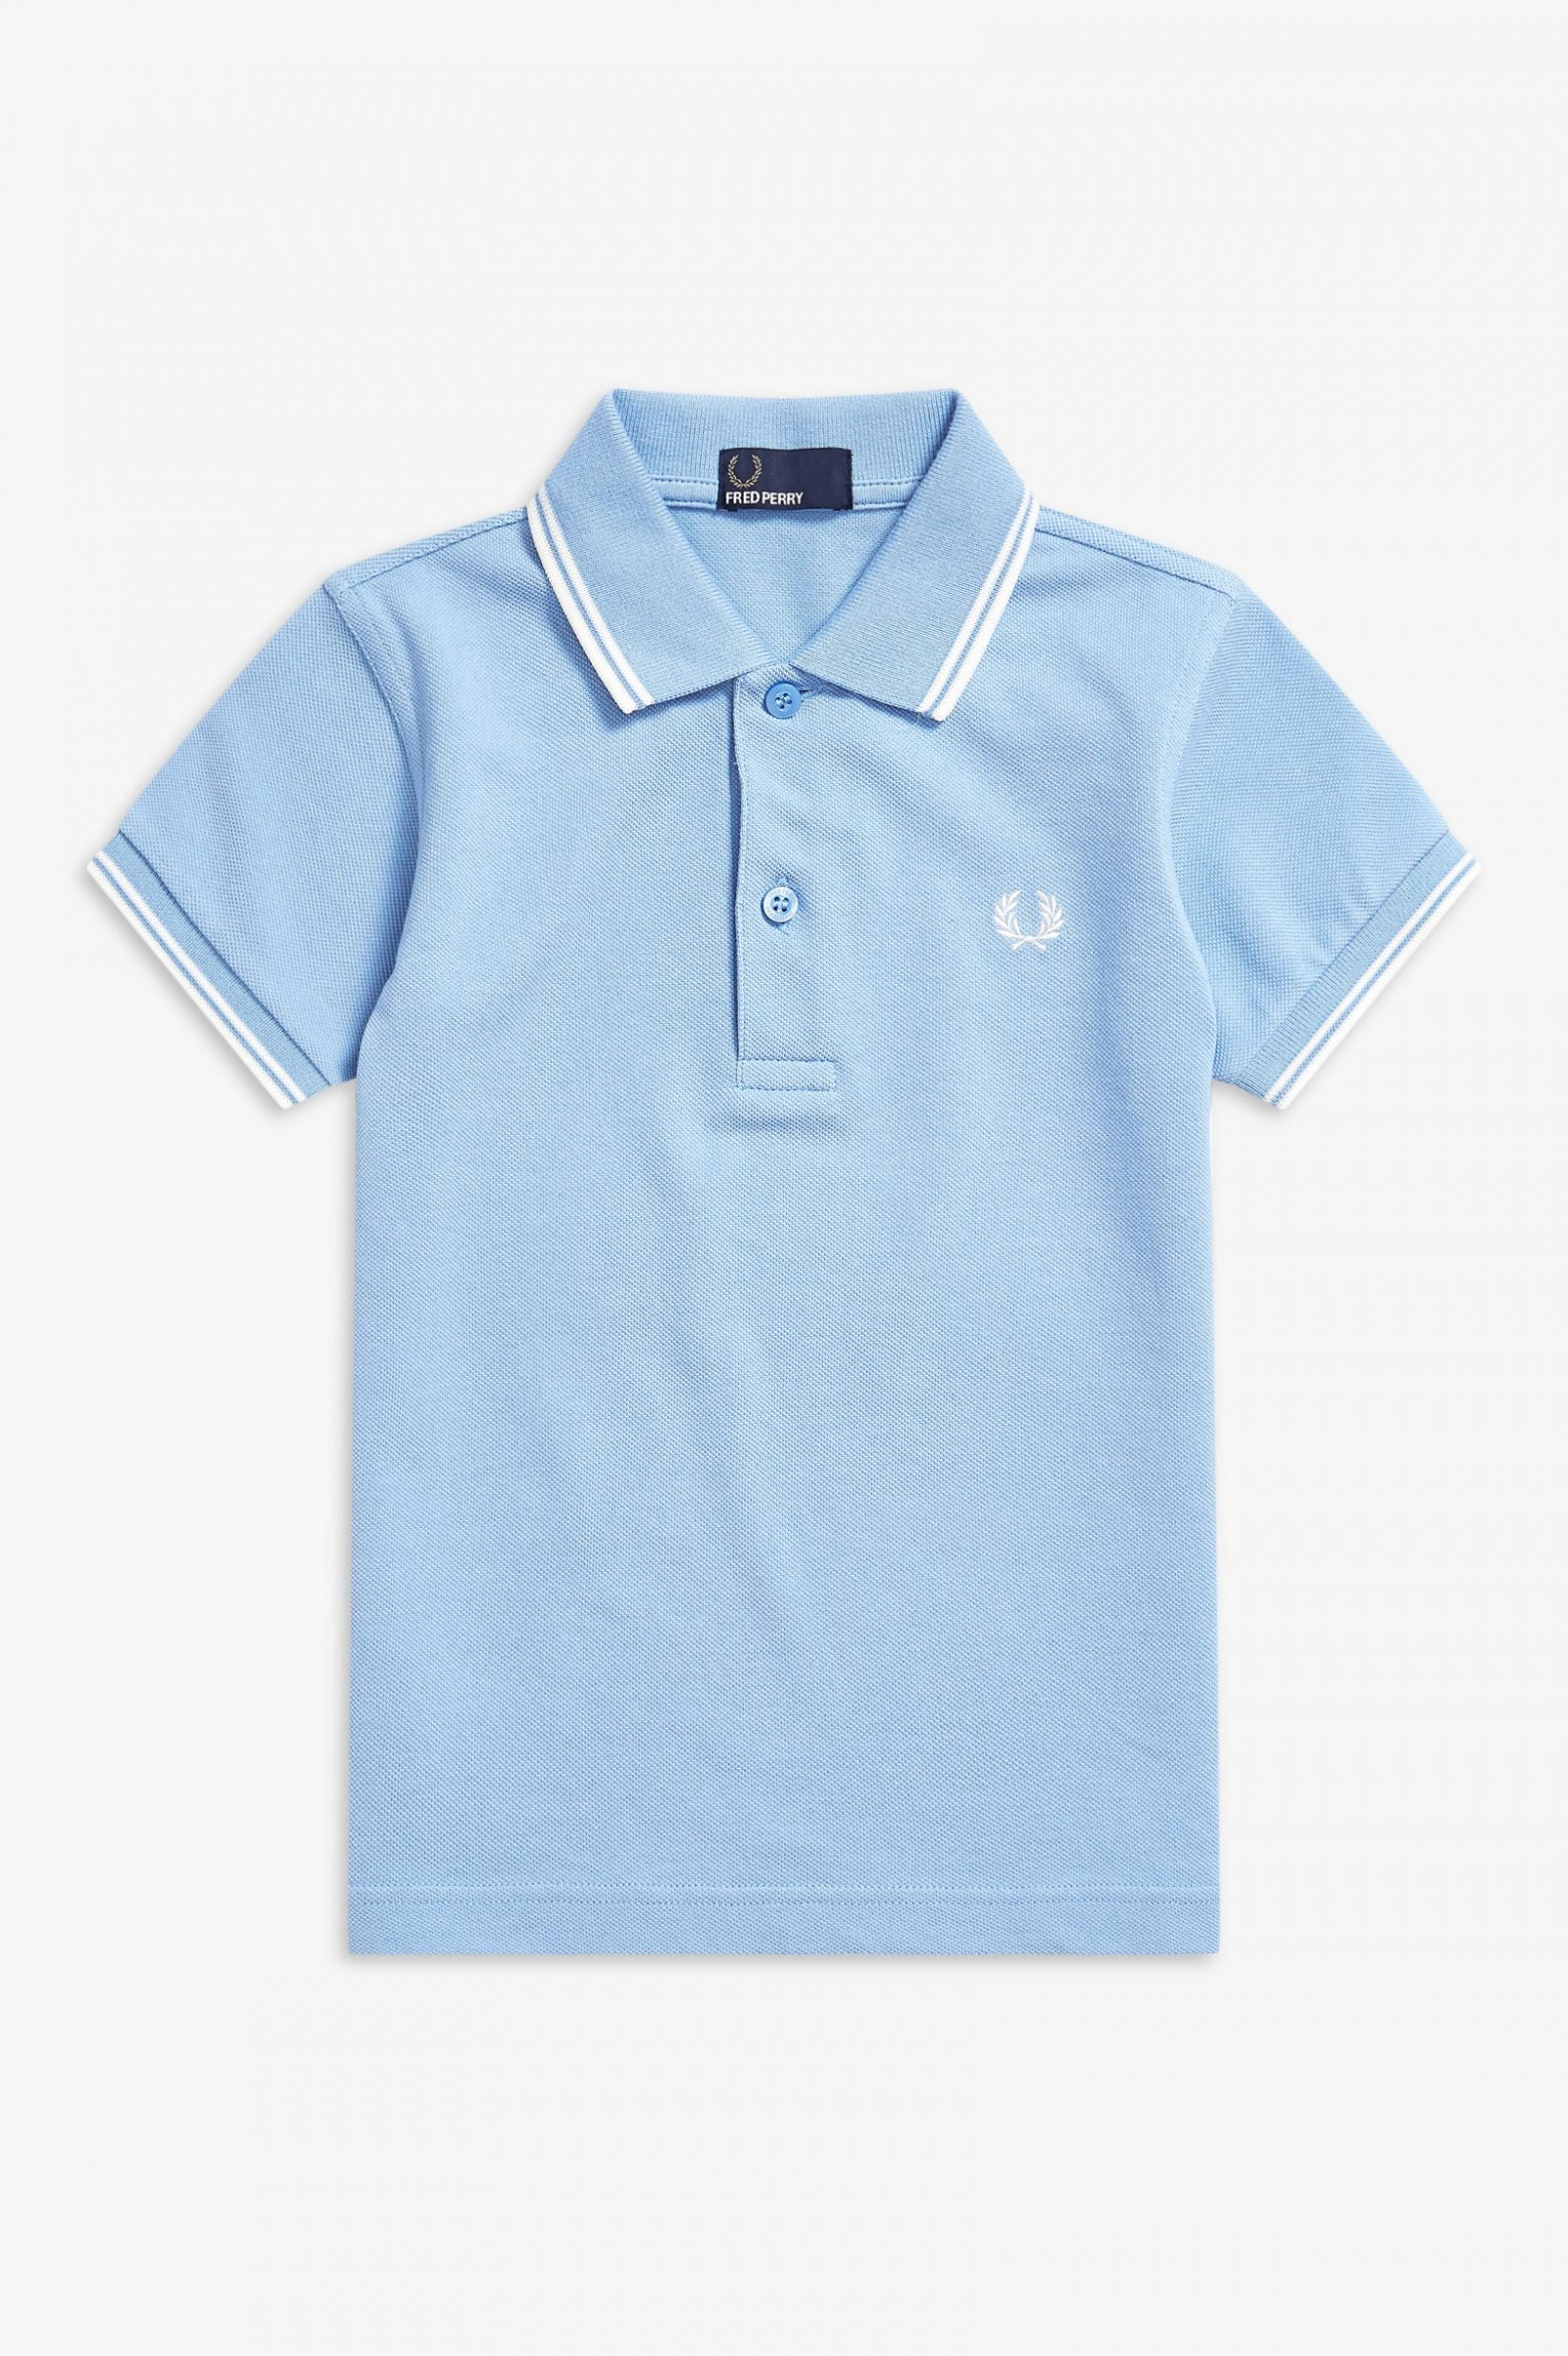 743bb2064 Kids Twin Tipped Fred Perry Shirt - Sky Blue   Snow White   Snow ...